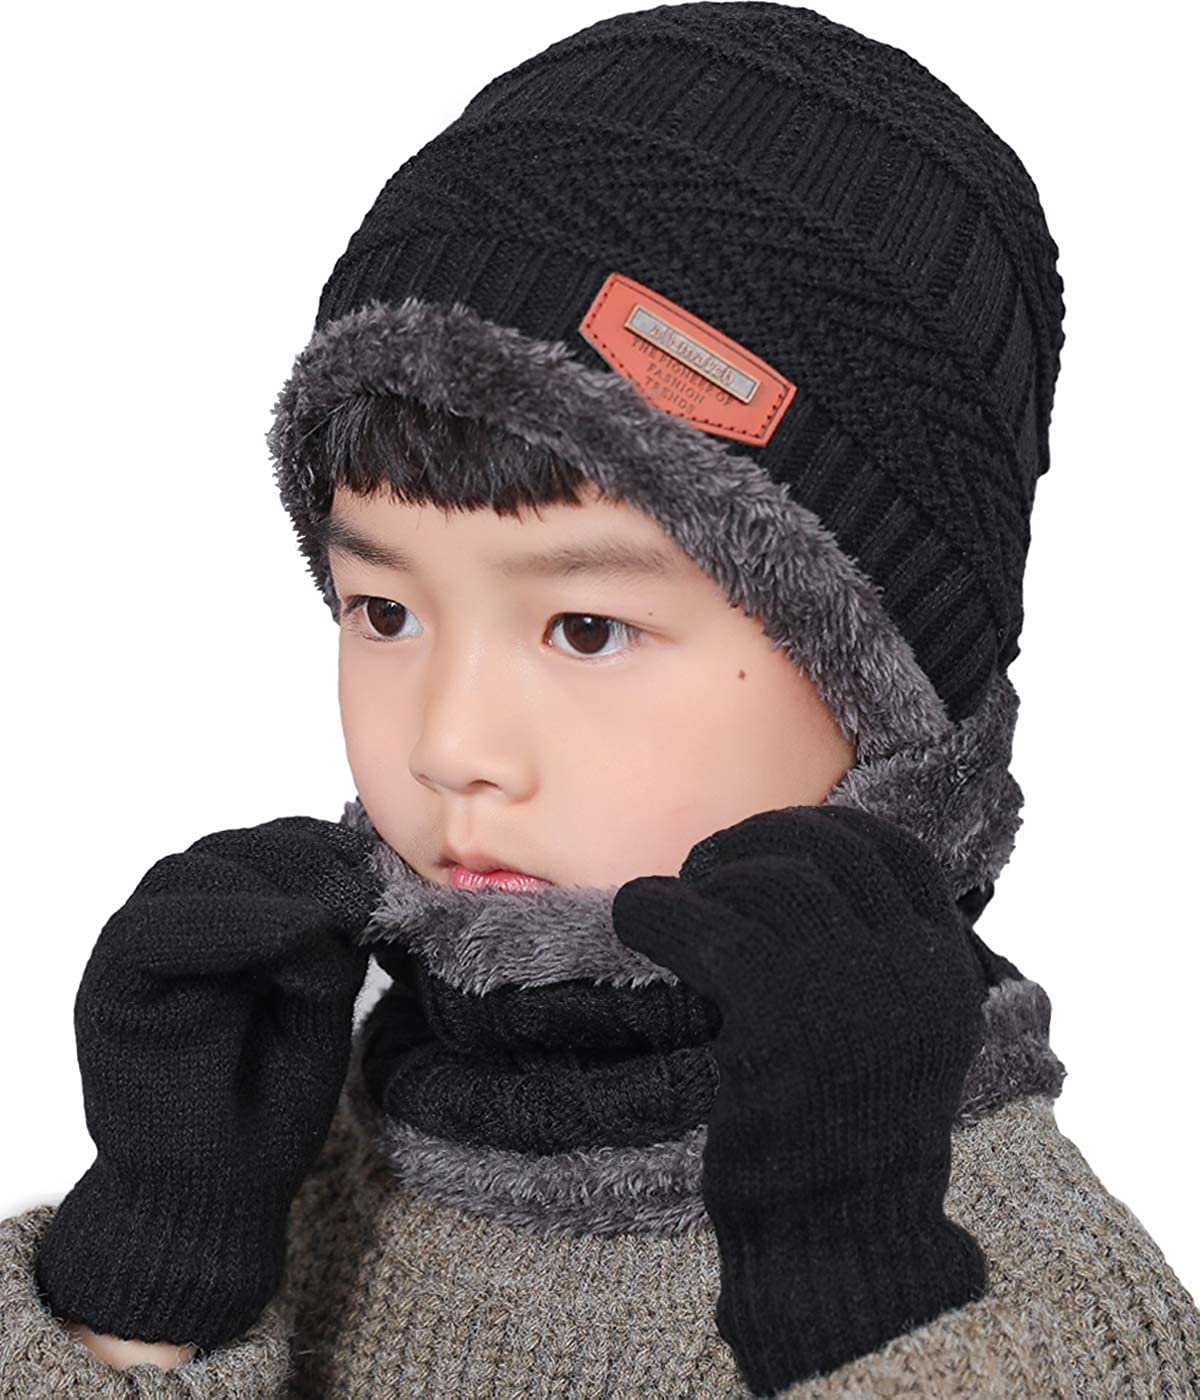 Maylisacc 2 Pcs Kids Winter Knitted Hat and Fleece Neck Warmer Scarf Set for Boys Girls